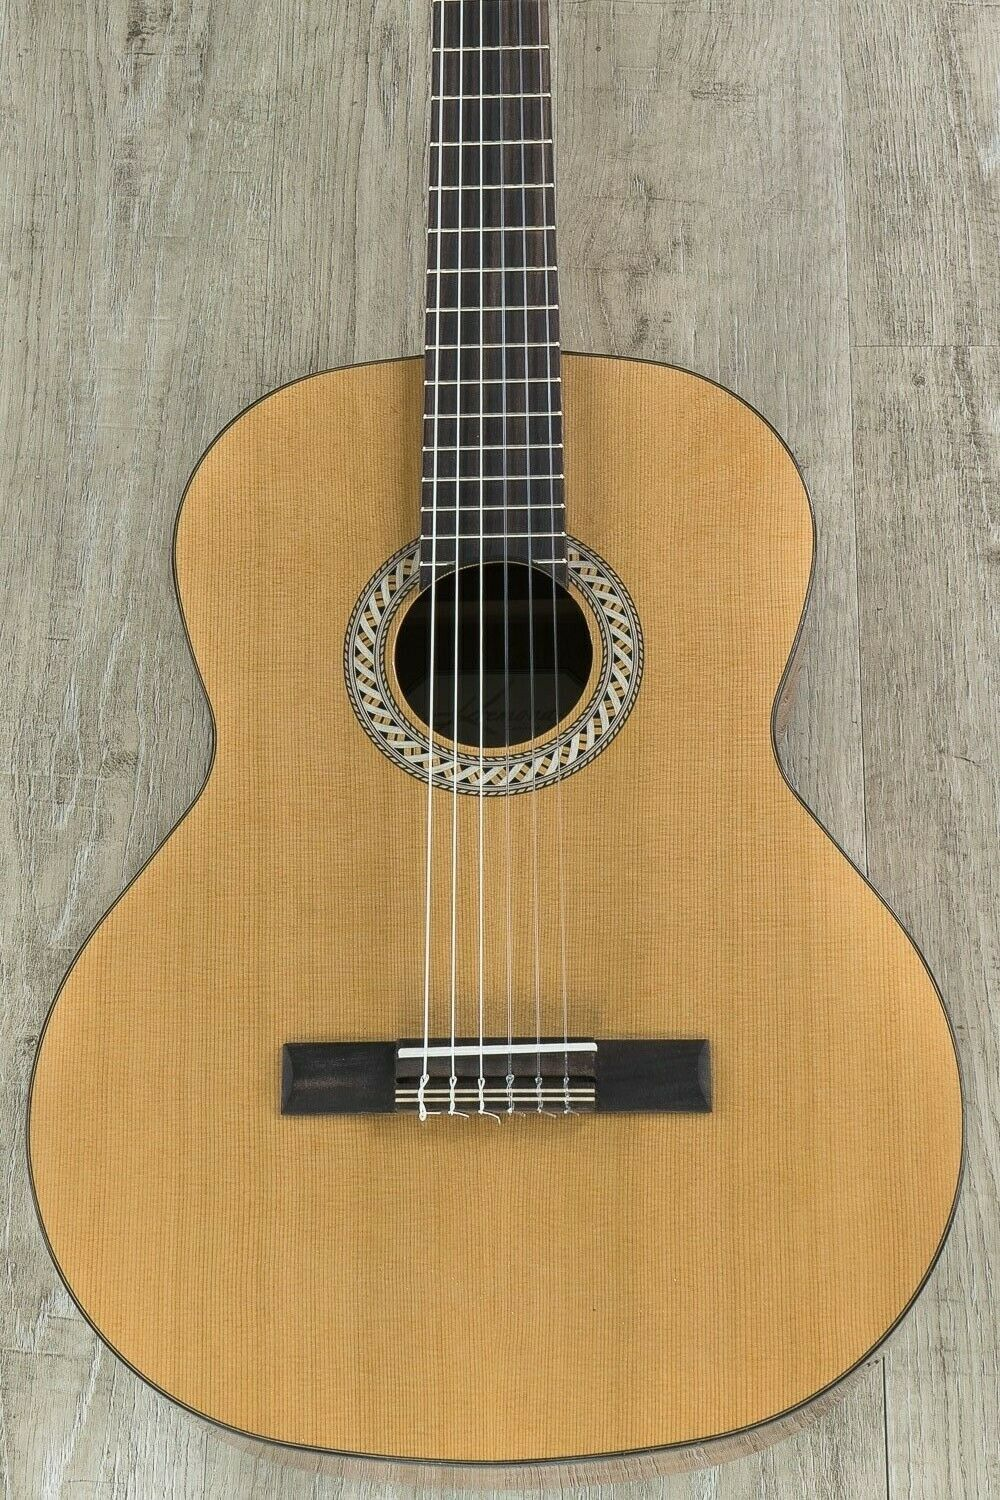 Kremona Guitars S65C Acoustic Classical Guitar, Nylon String, Cedar Top